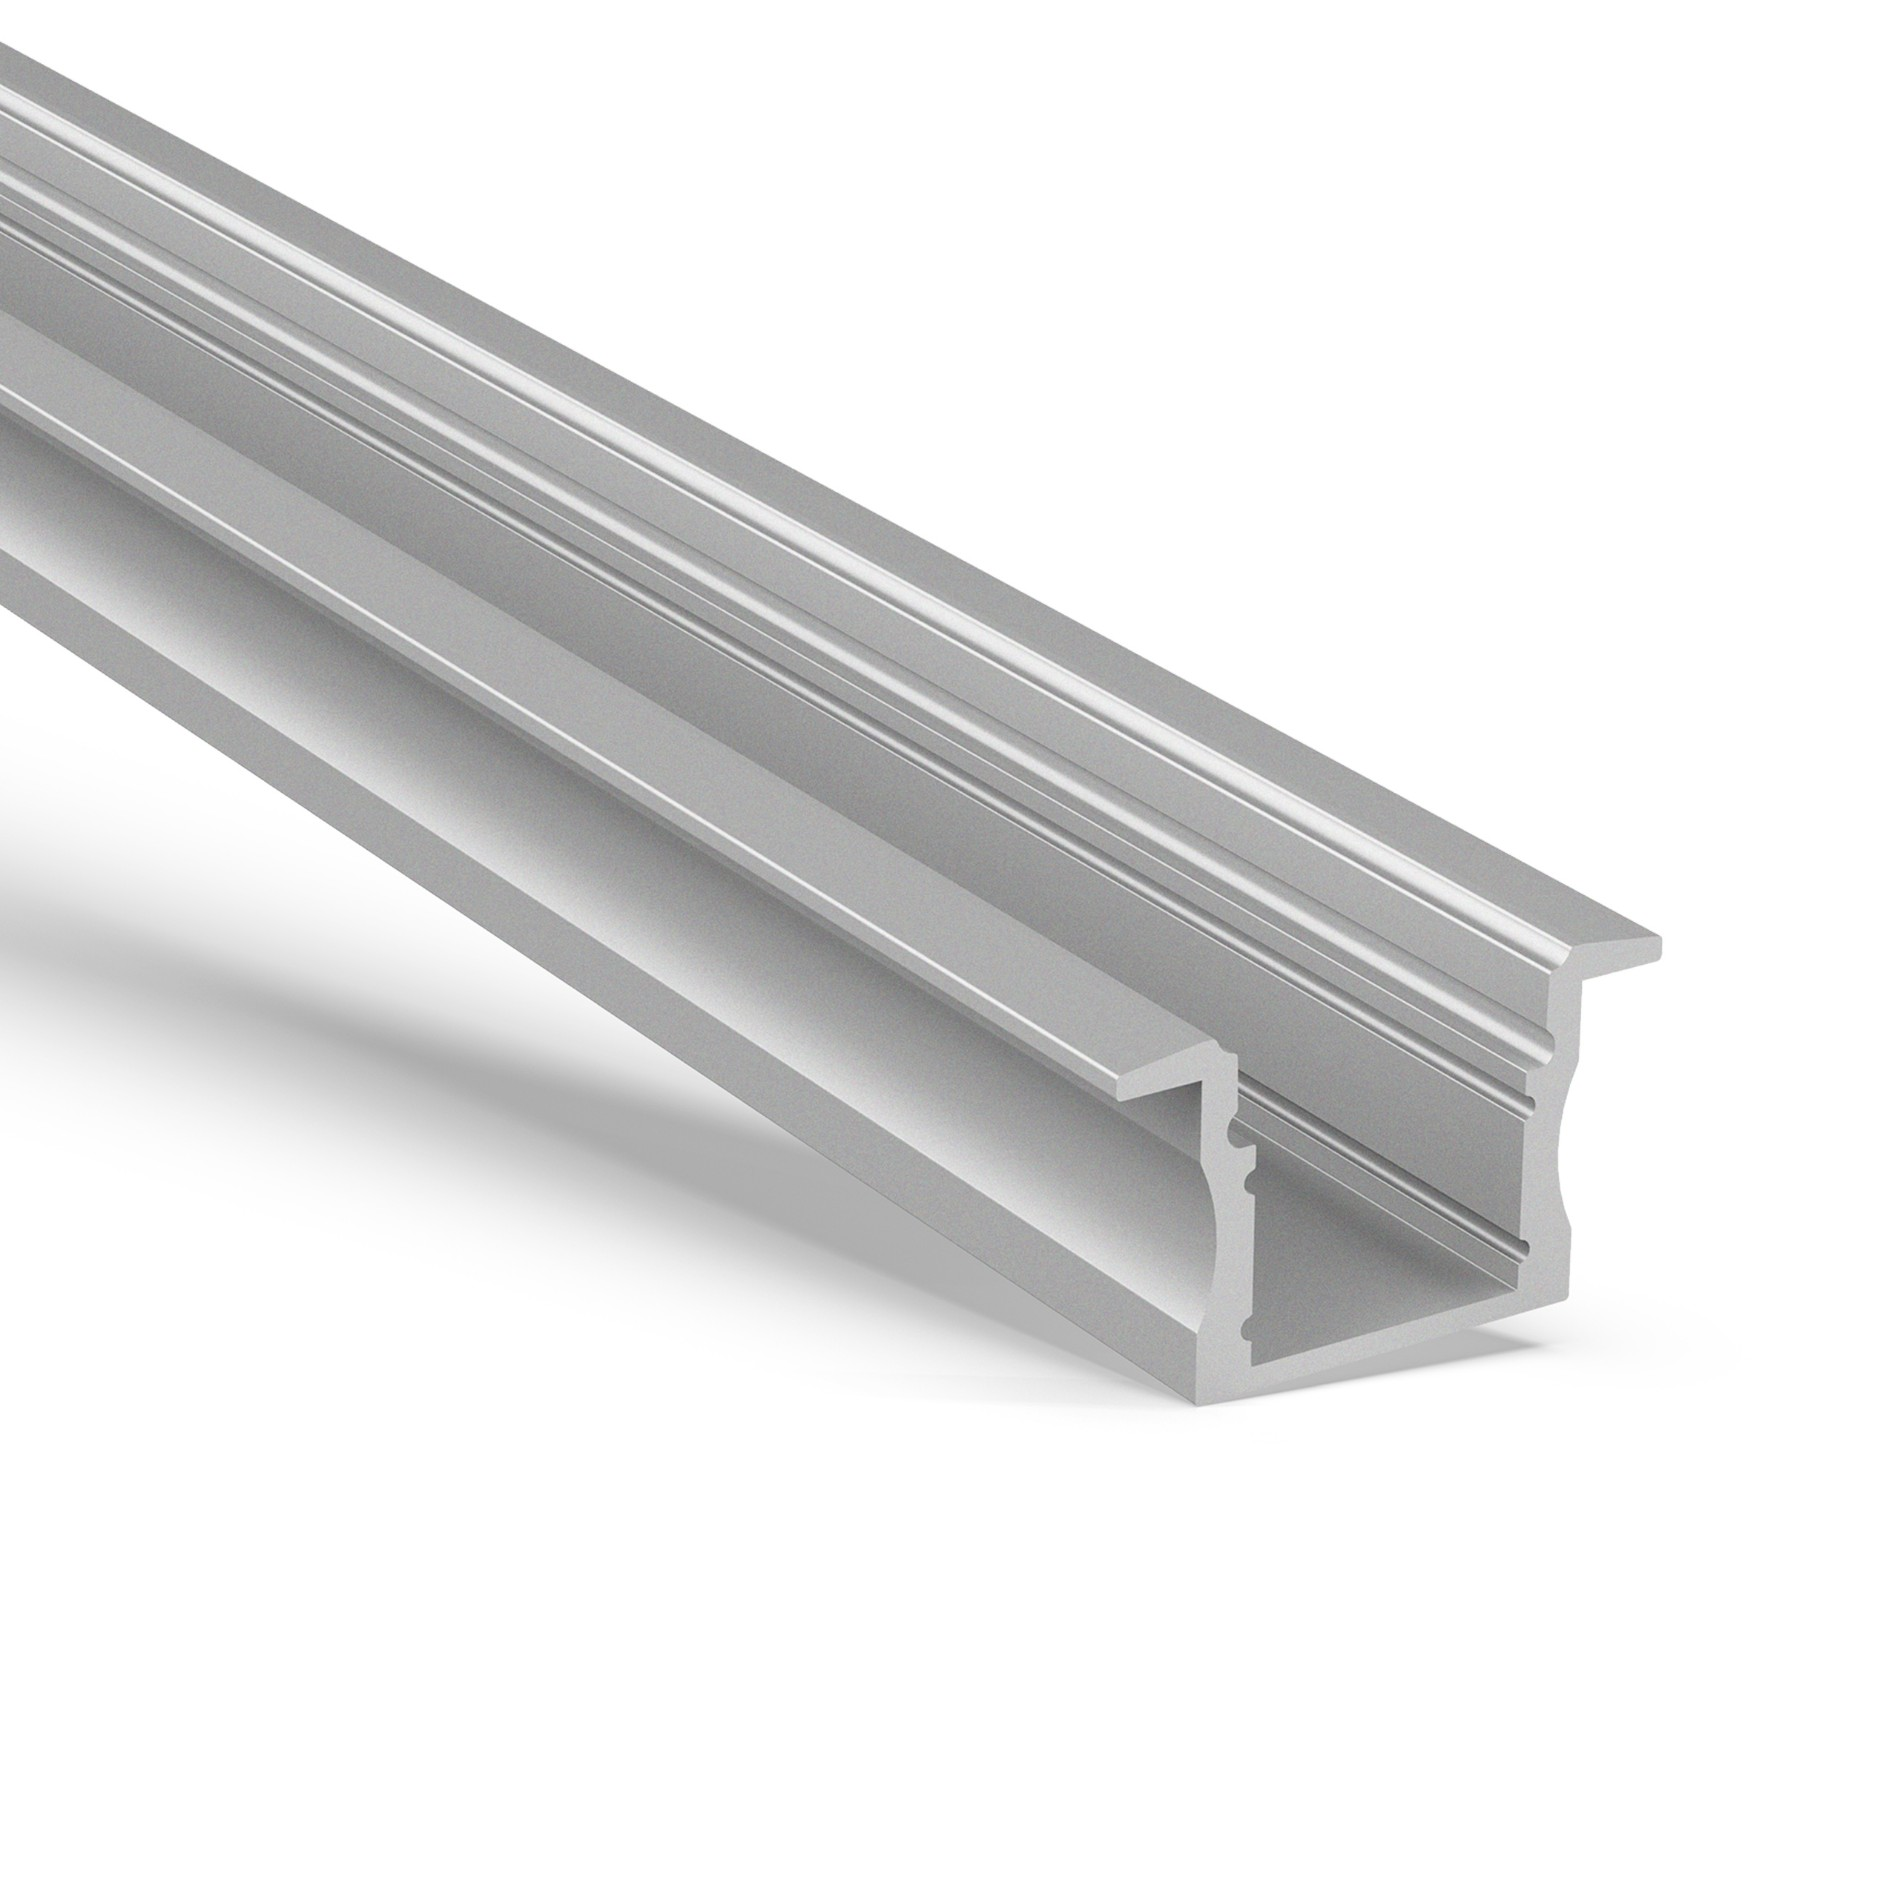 AR2 15mm high Recessed aluminum led profile 23x15.2mm